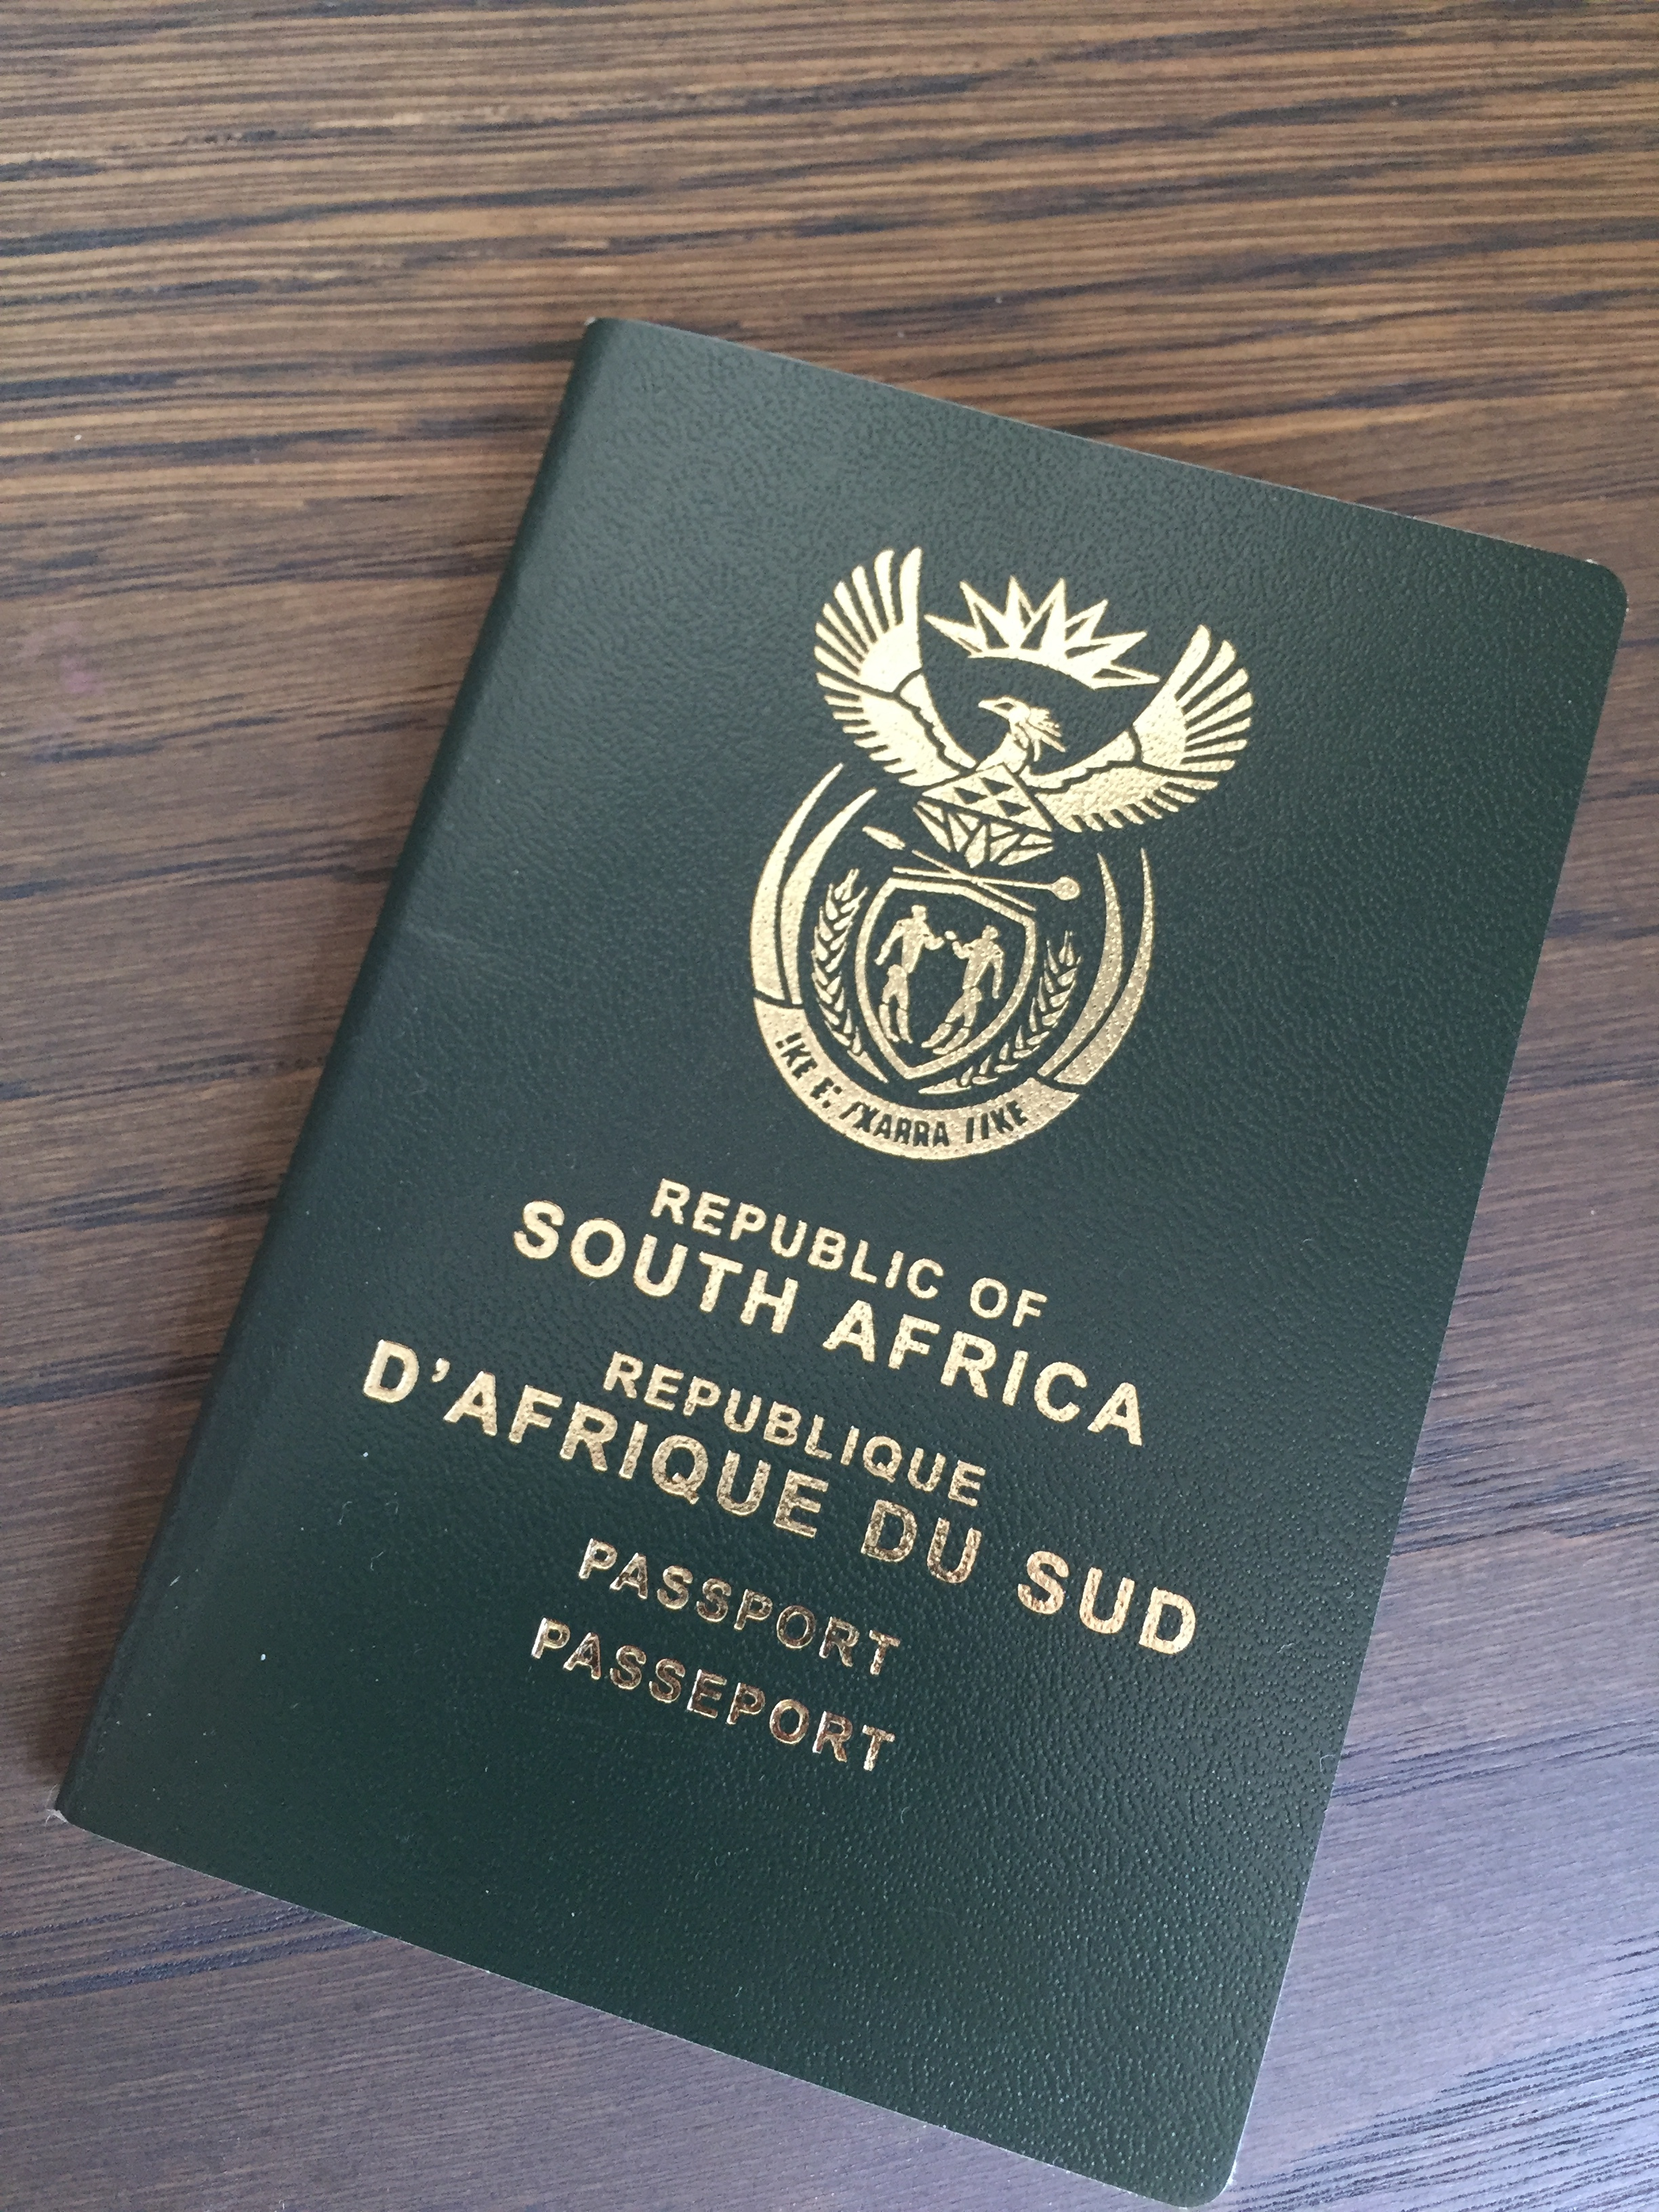 The South African passport cover